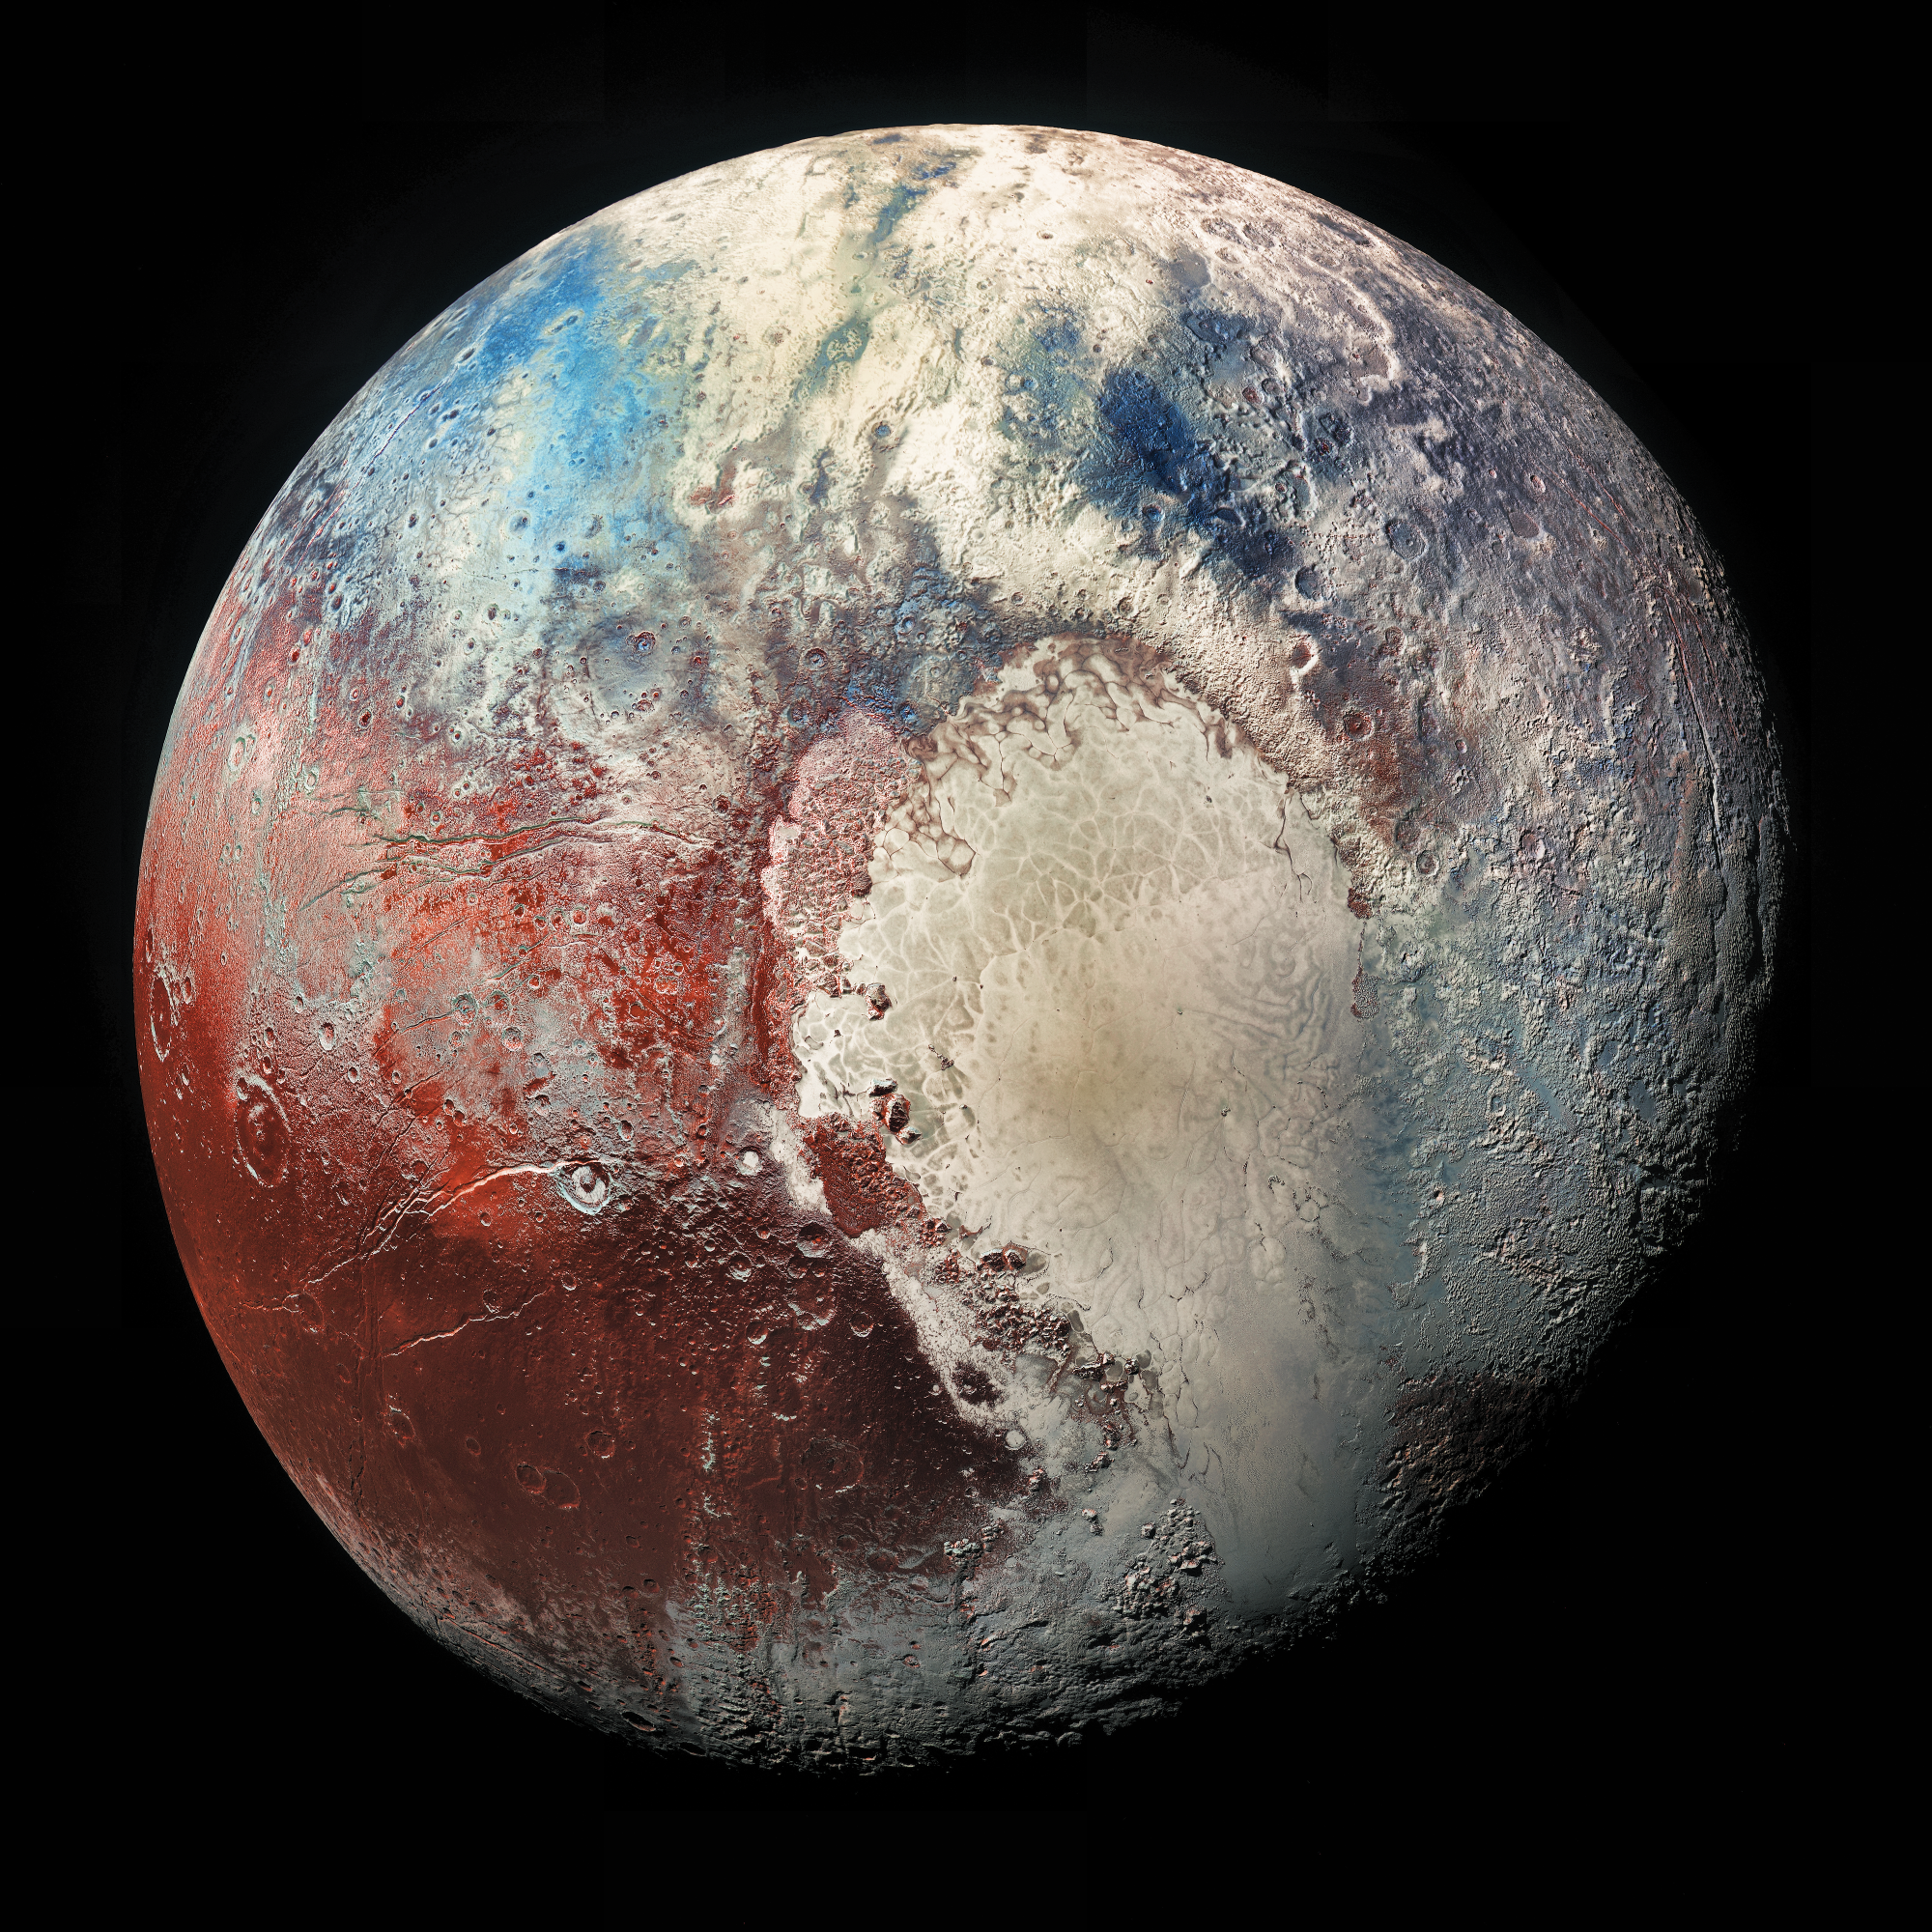 pluto planet images - 760×847